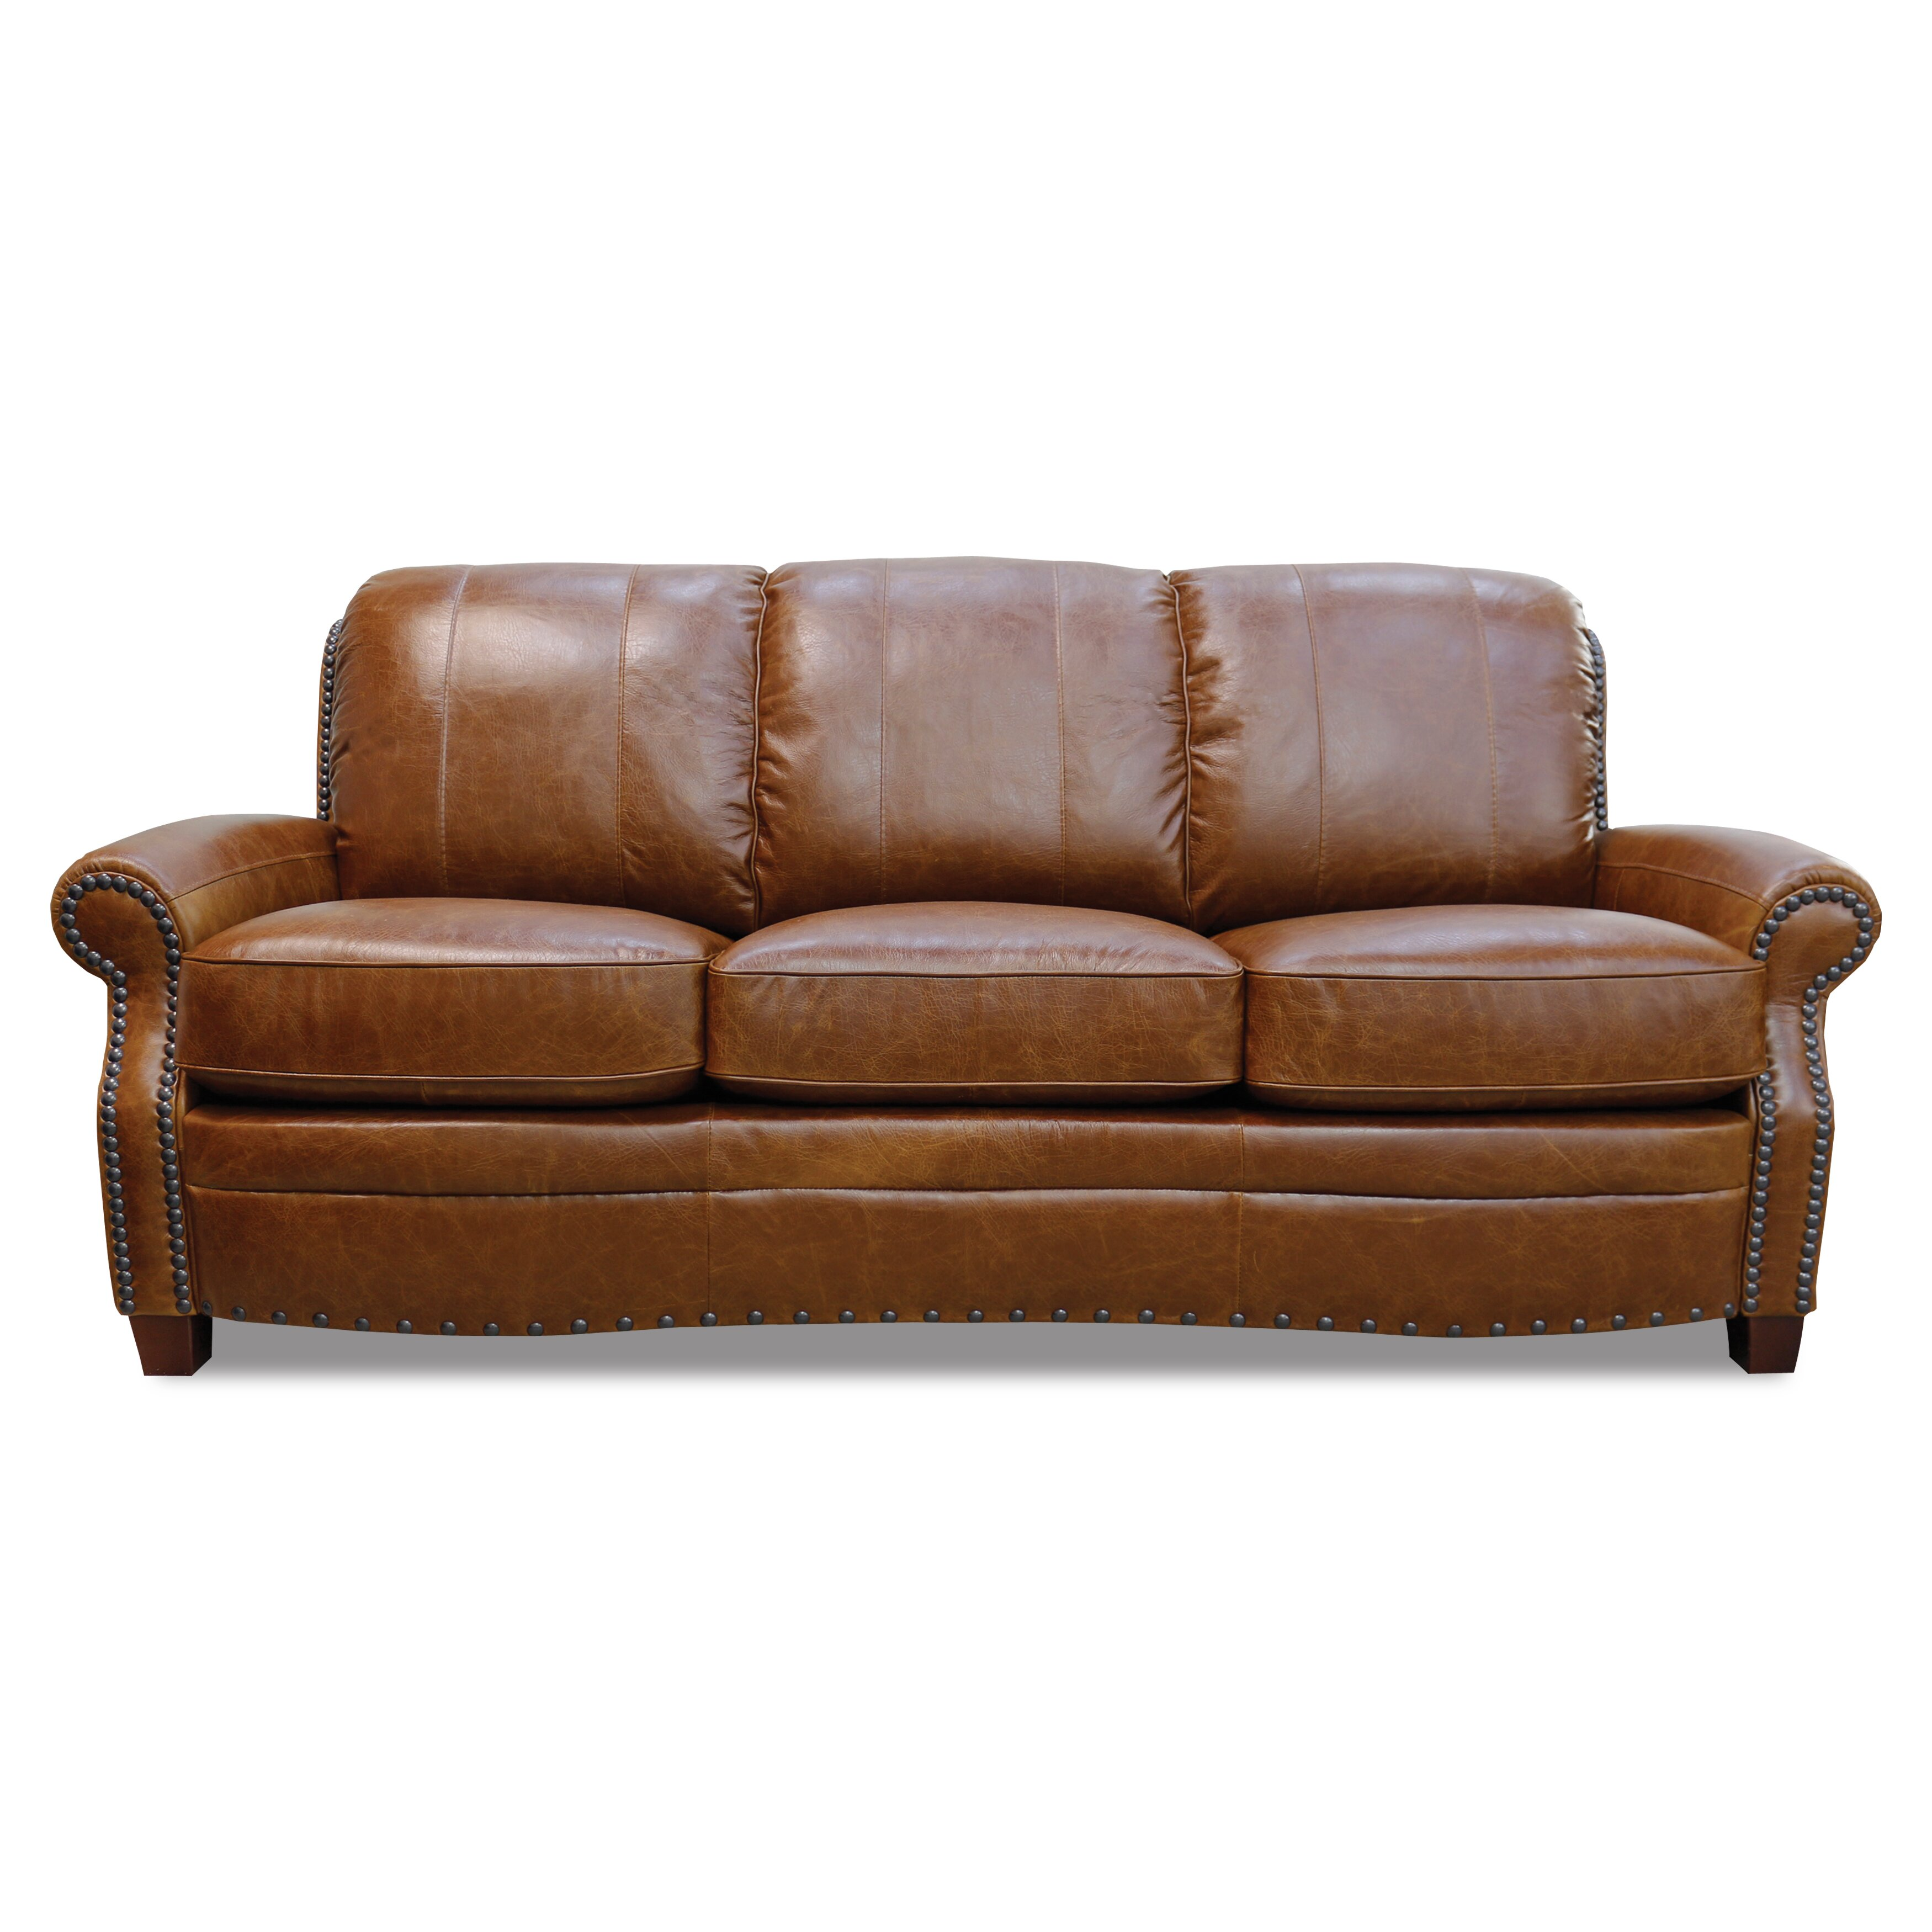 Luke Leather Ashton Leather Modular Sofa ASHTON S LLR1247